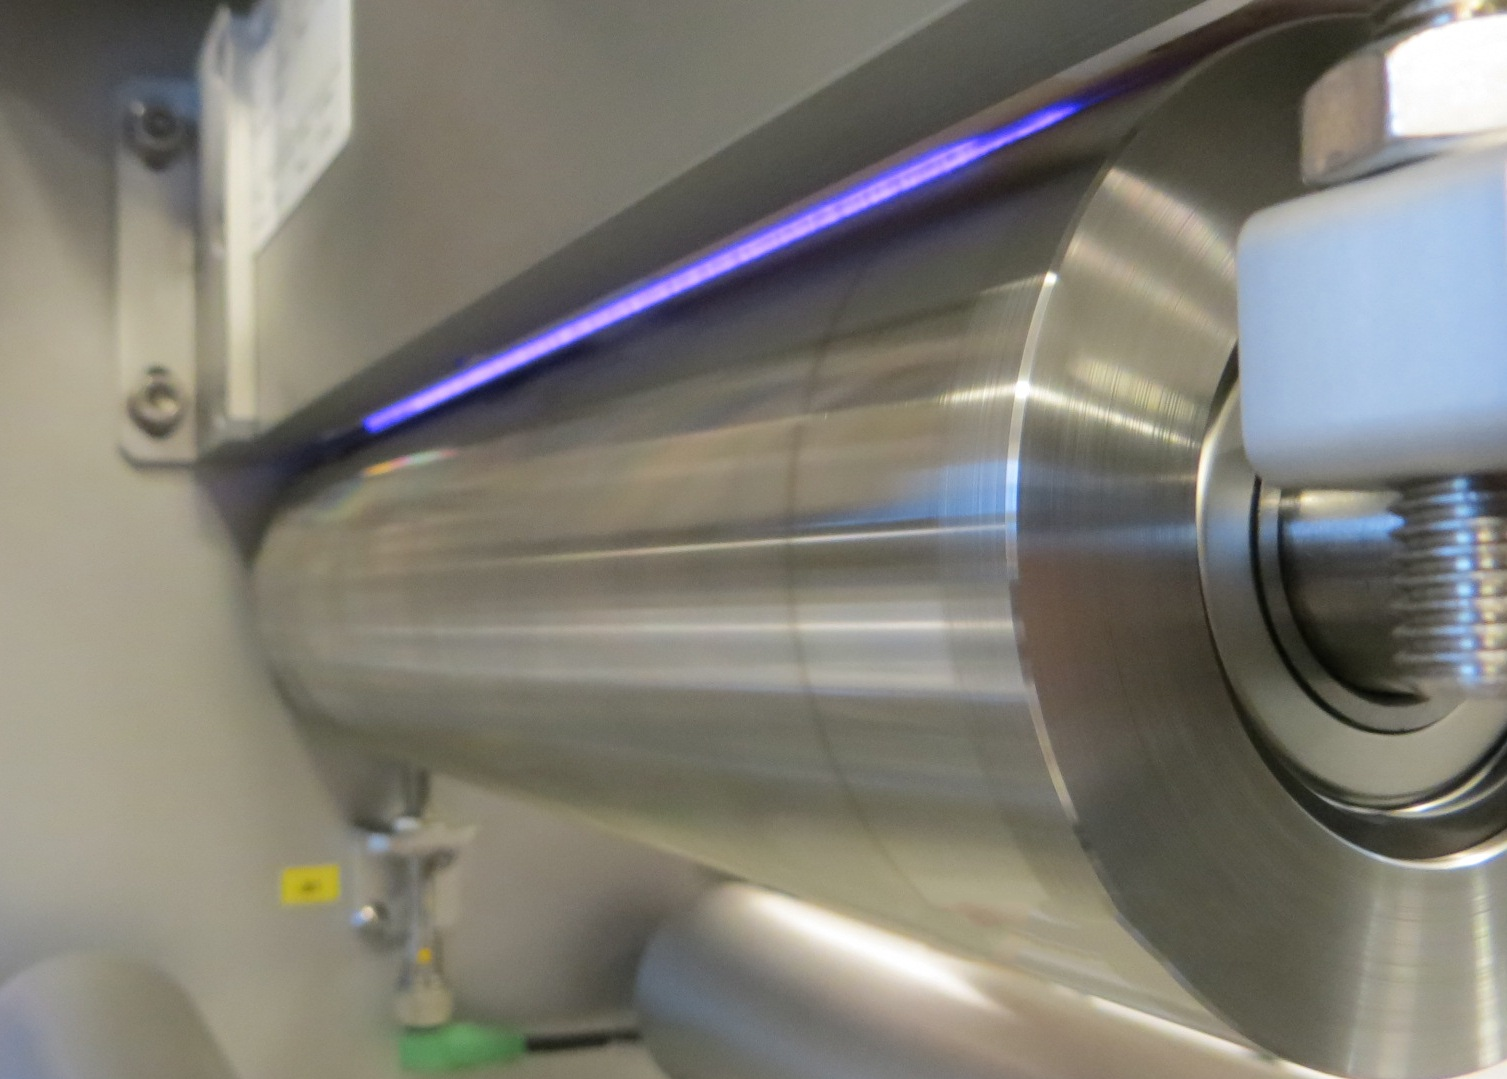 Labeltec - For treatment of continuous films, LabelTEC treatment systems can treat from 100mm wide up to 2000mm for a variety of materials - usually ahead of laminating or printing processes.